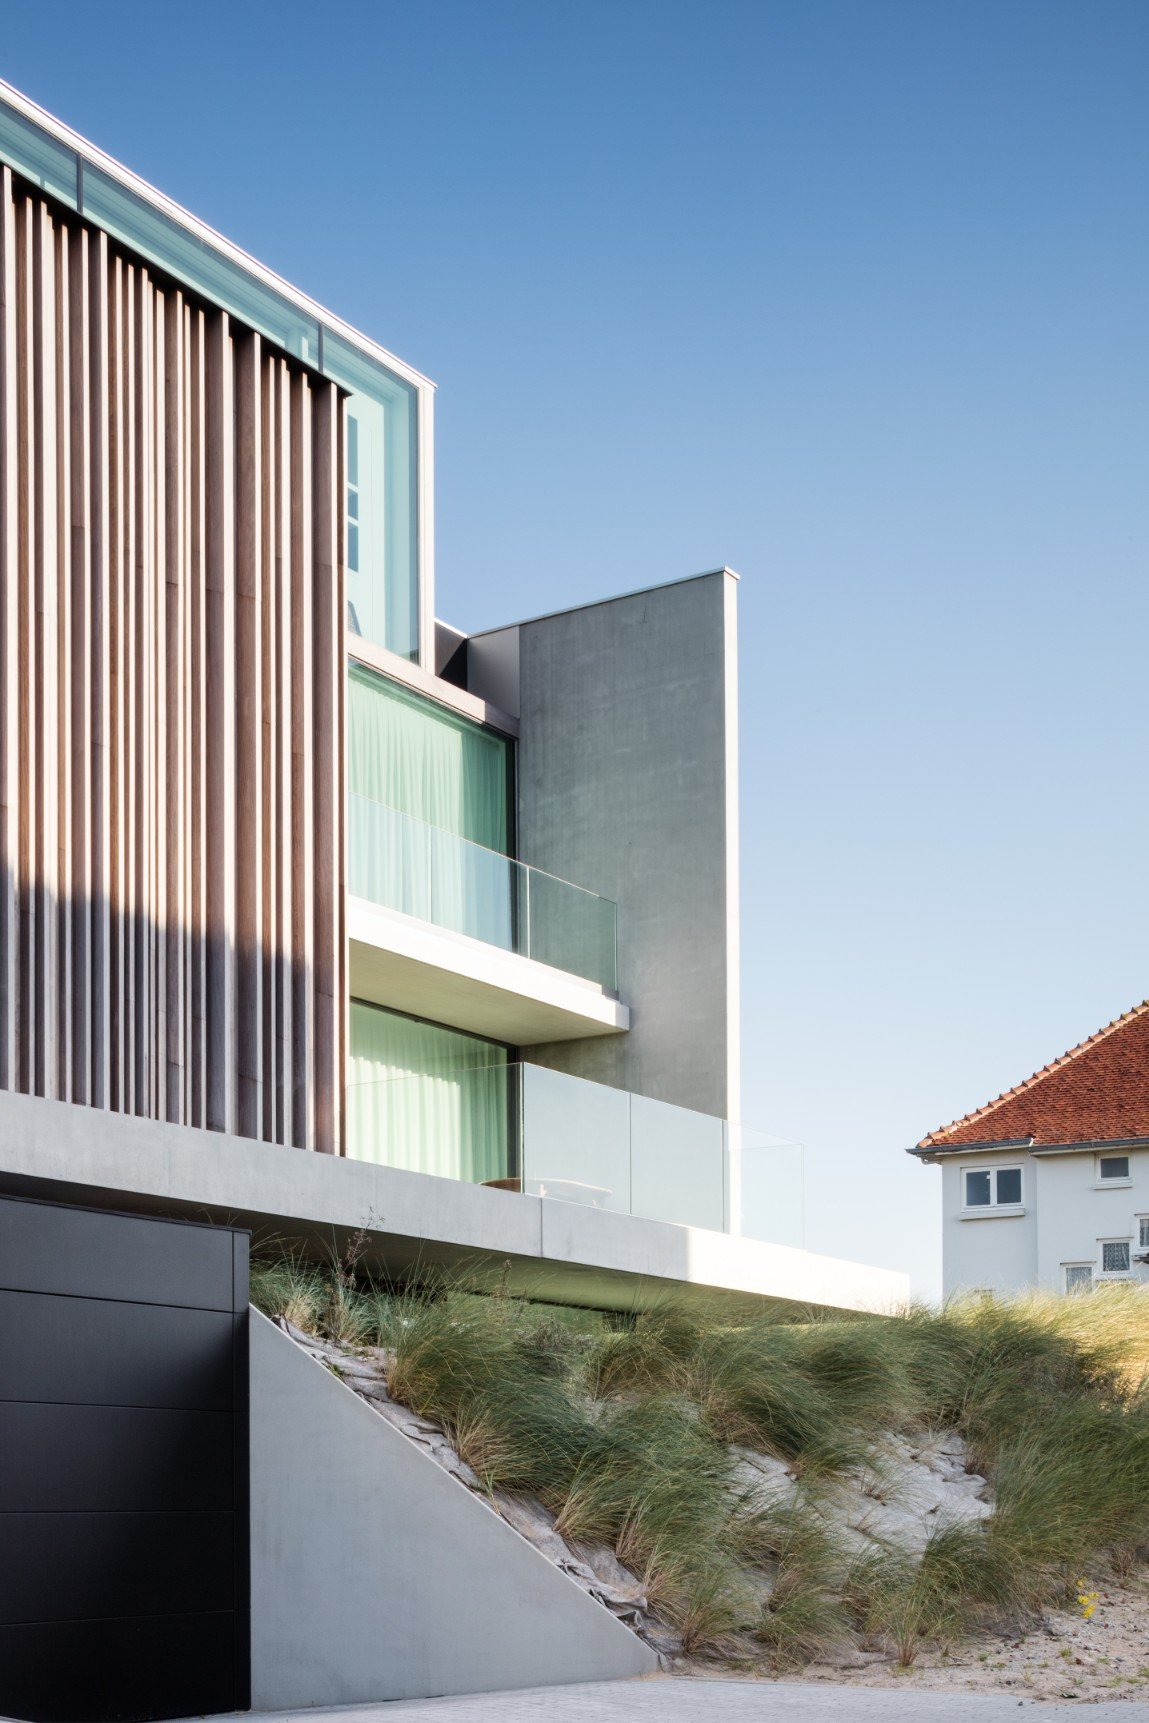 Rietveldprojects-Residence-ON-appartement-design-architectuur-kust-tvdv8